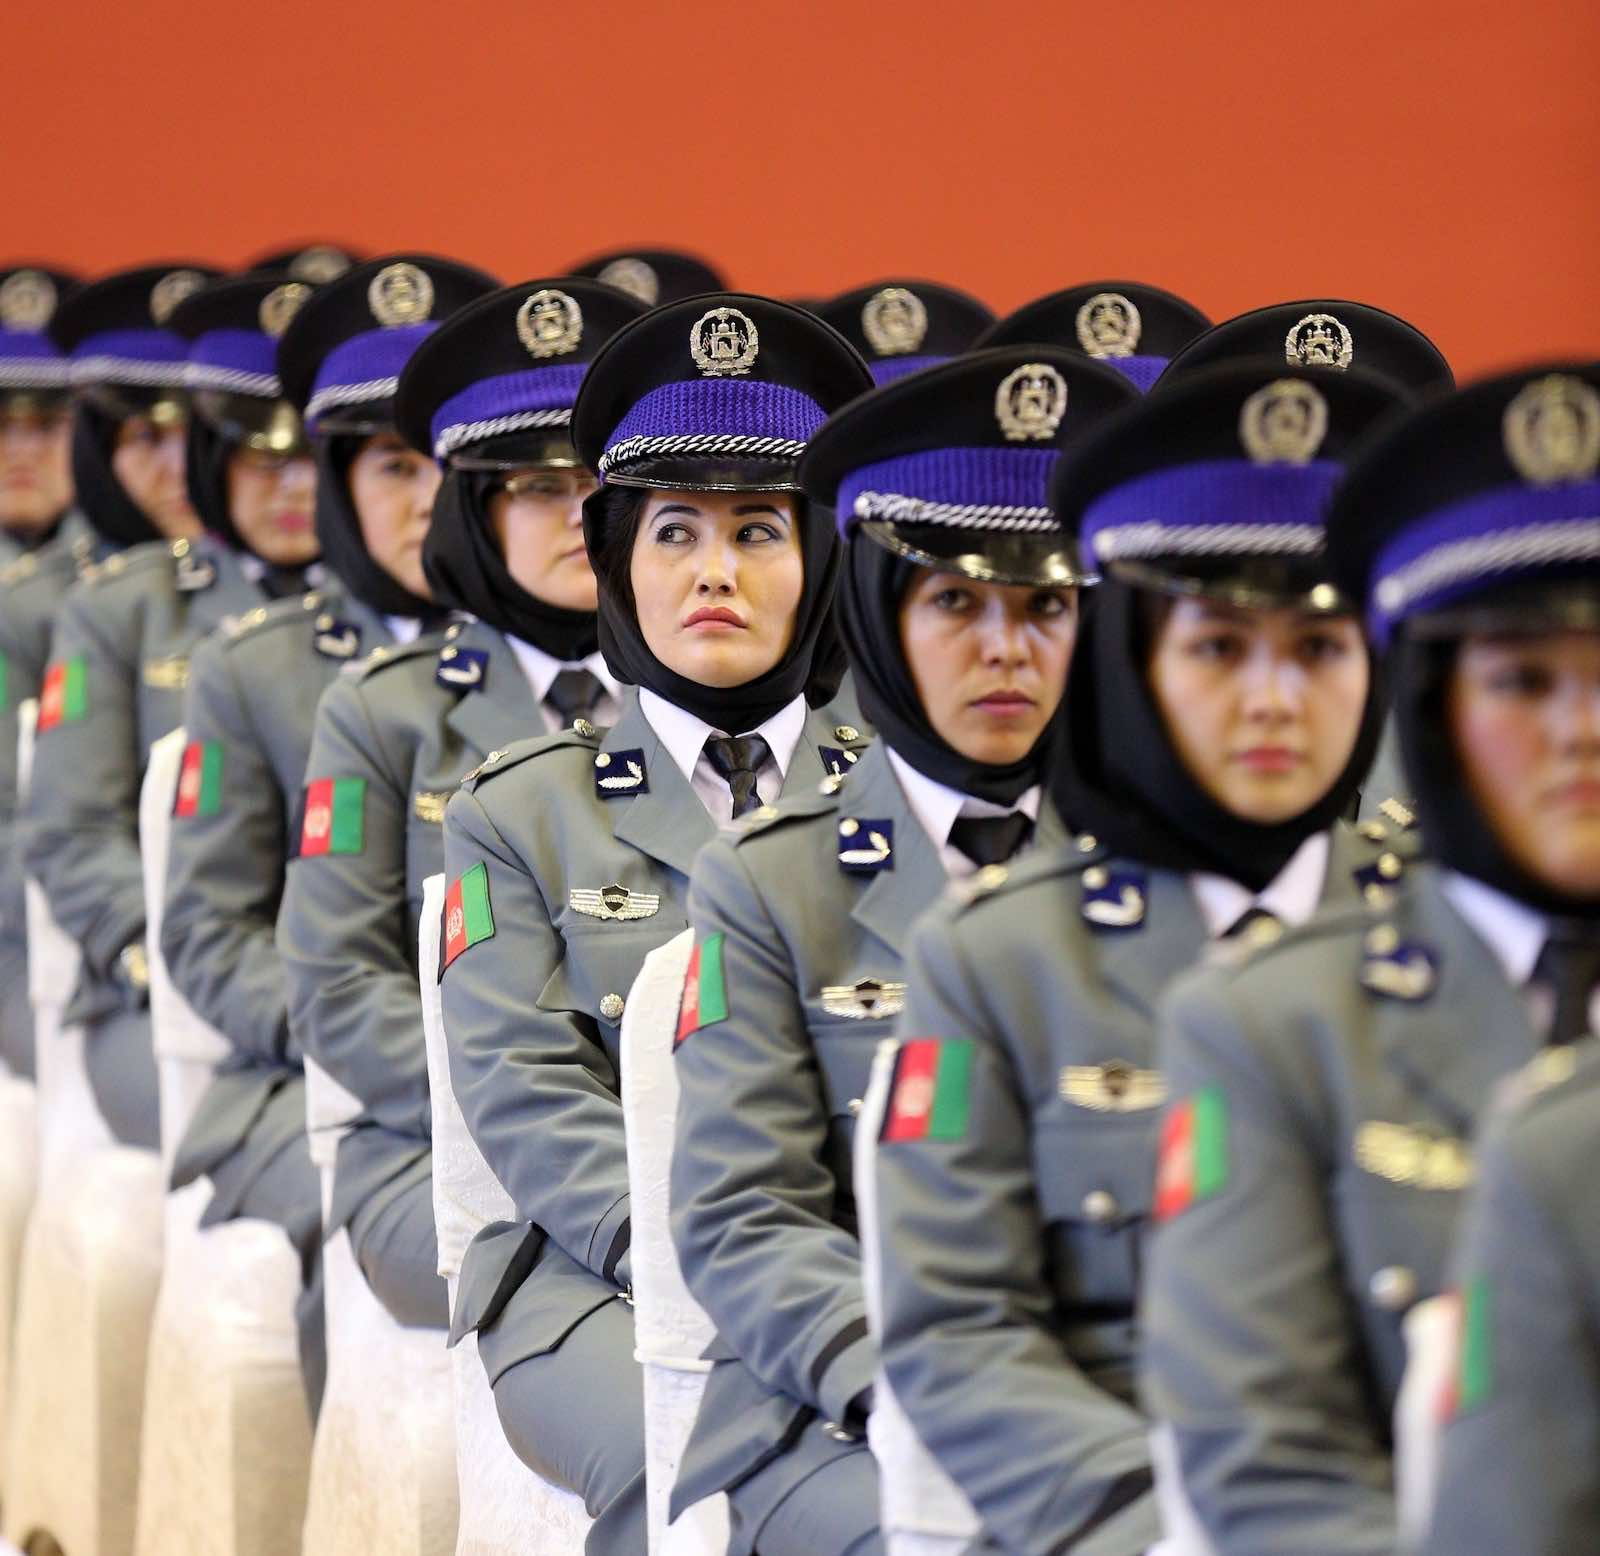 Afghani women police during a 2015 graduation ceremony (Serhat Cagdas/Anadolu Agency/Getty Images)